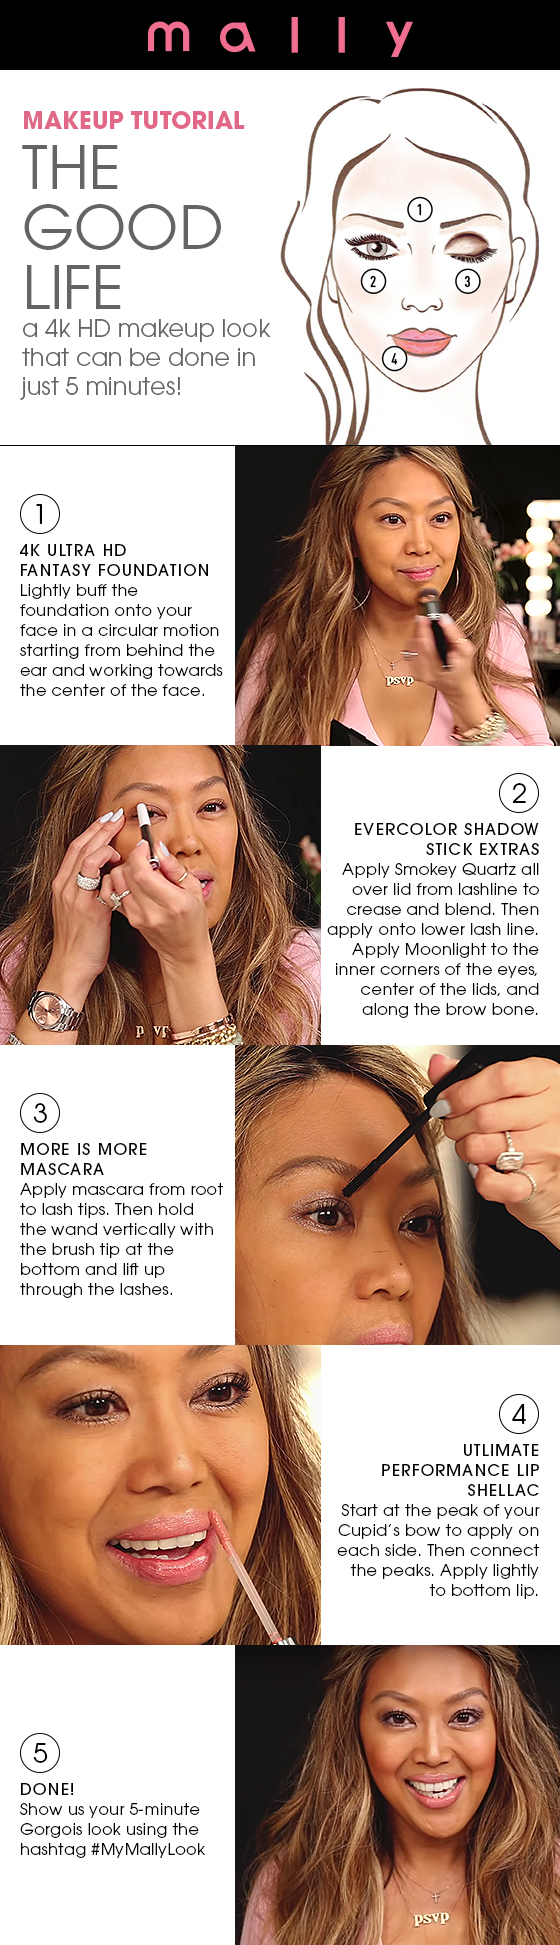 Looking For A Gorgois Spring Makeup Look That You Canplete In 5 Minutes  Or Less